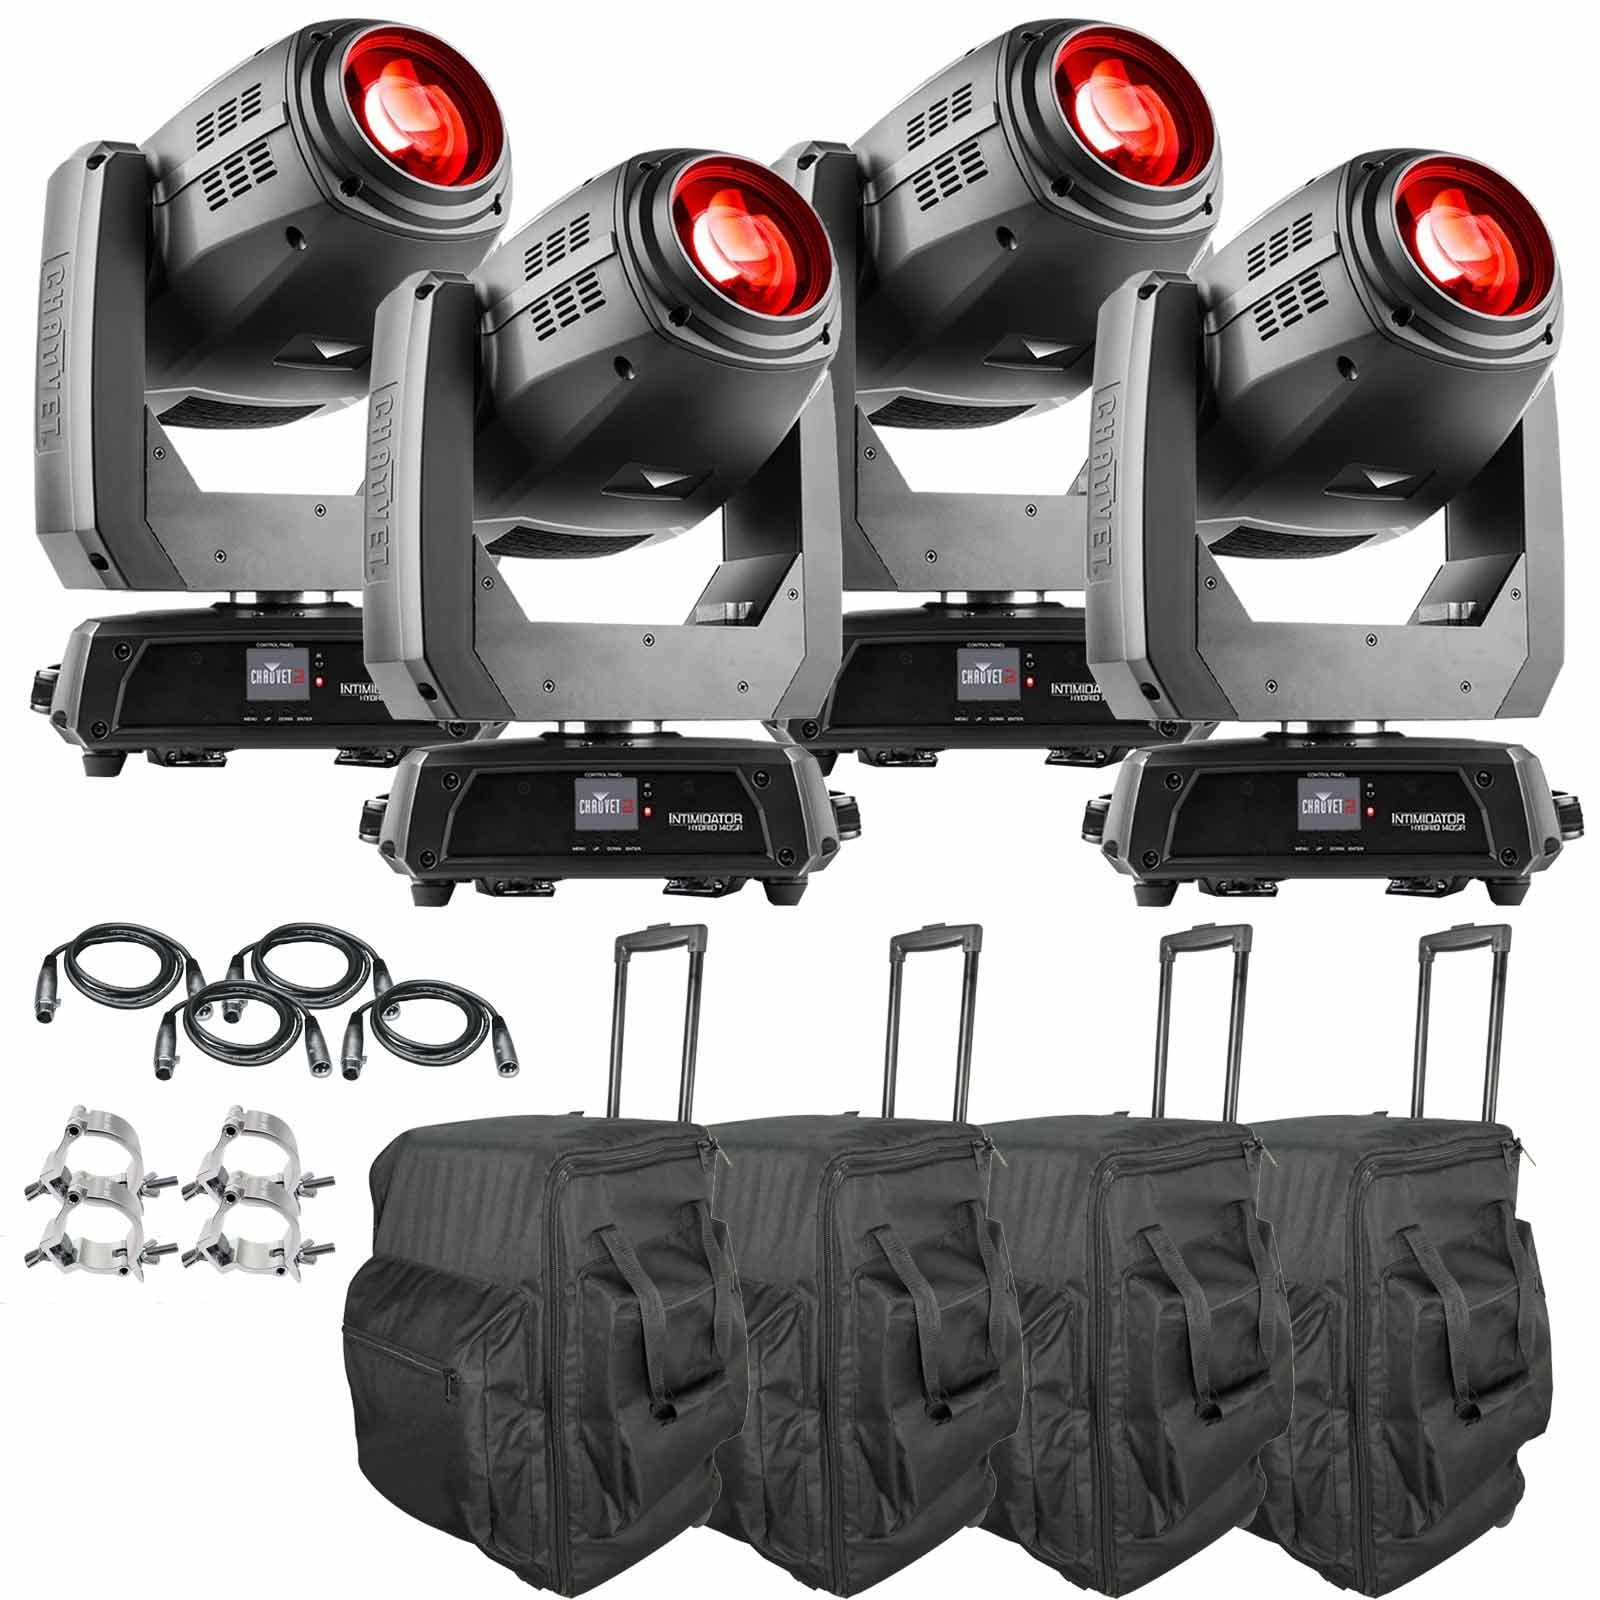 4-chauvet-dj-intimidator-hybrid-140sr-moving-head-lights-with-cases-package-540.jpg